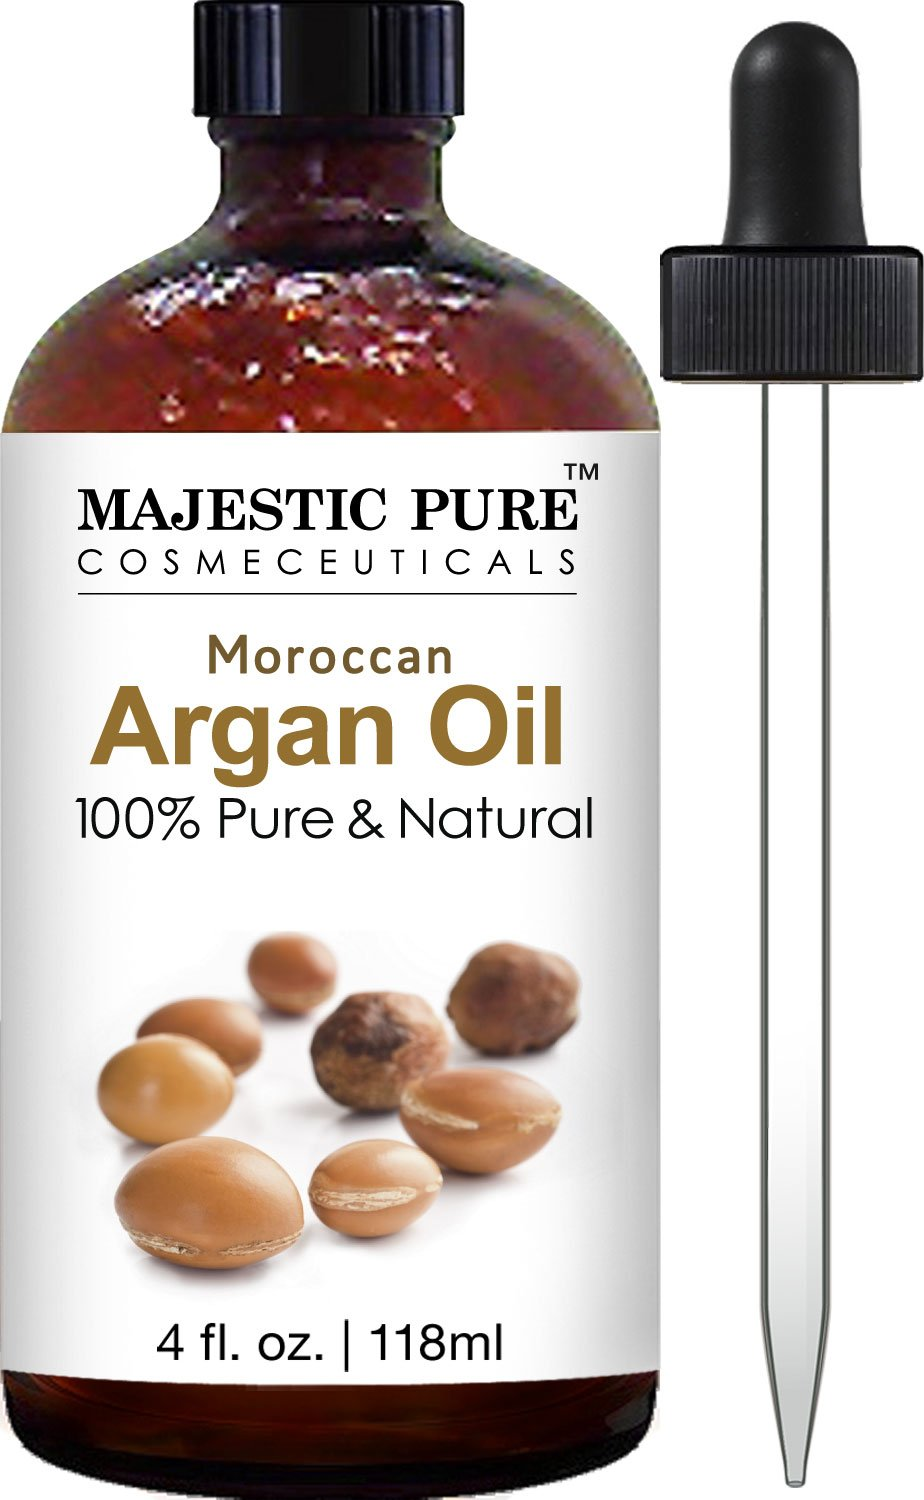 Majestic Pure Moroccan Argan Oil for Hair, Face, Nails, Beard & Cuticles – for Men and Women – 100% Natural & Organic, 4 fl. oz.